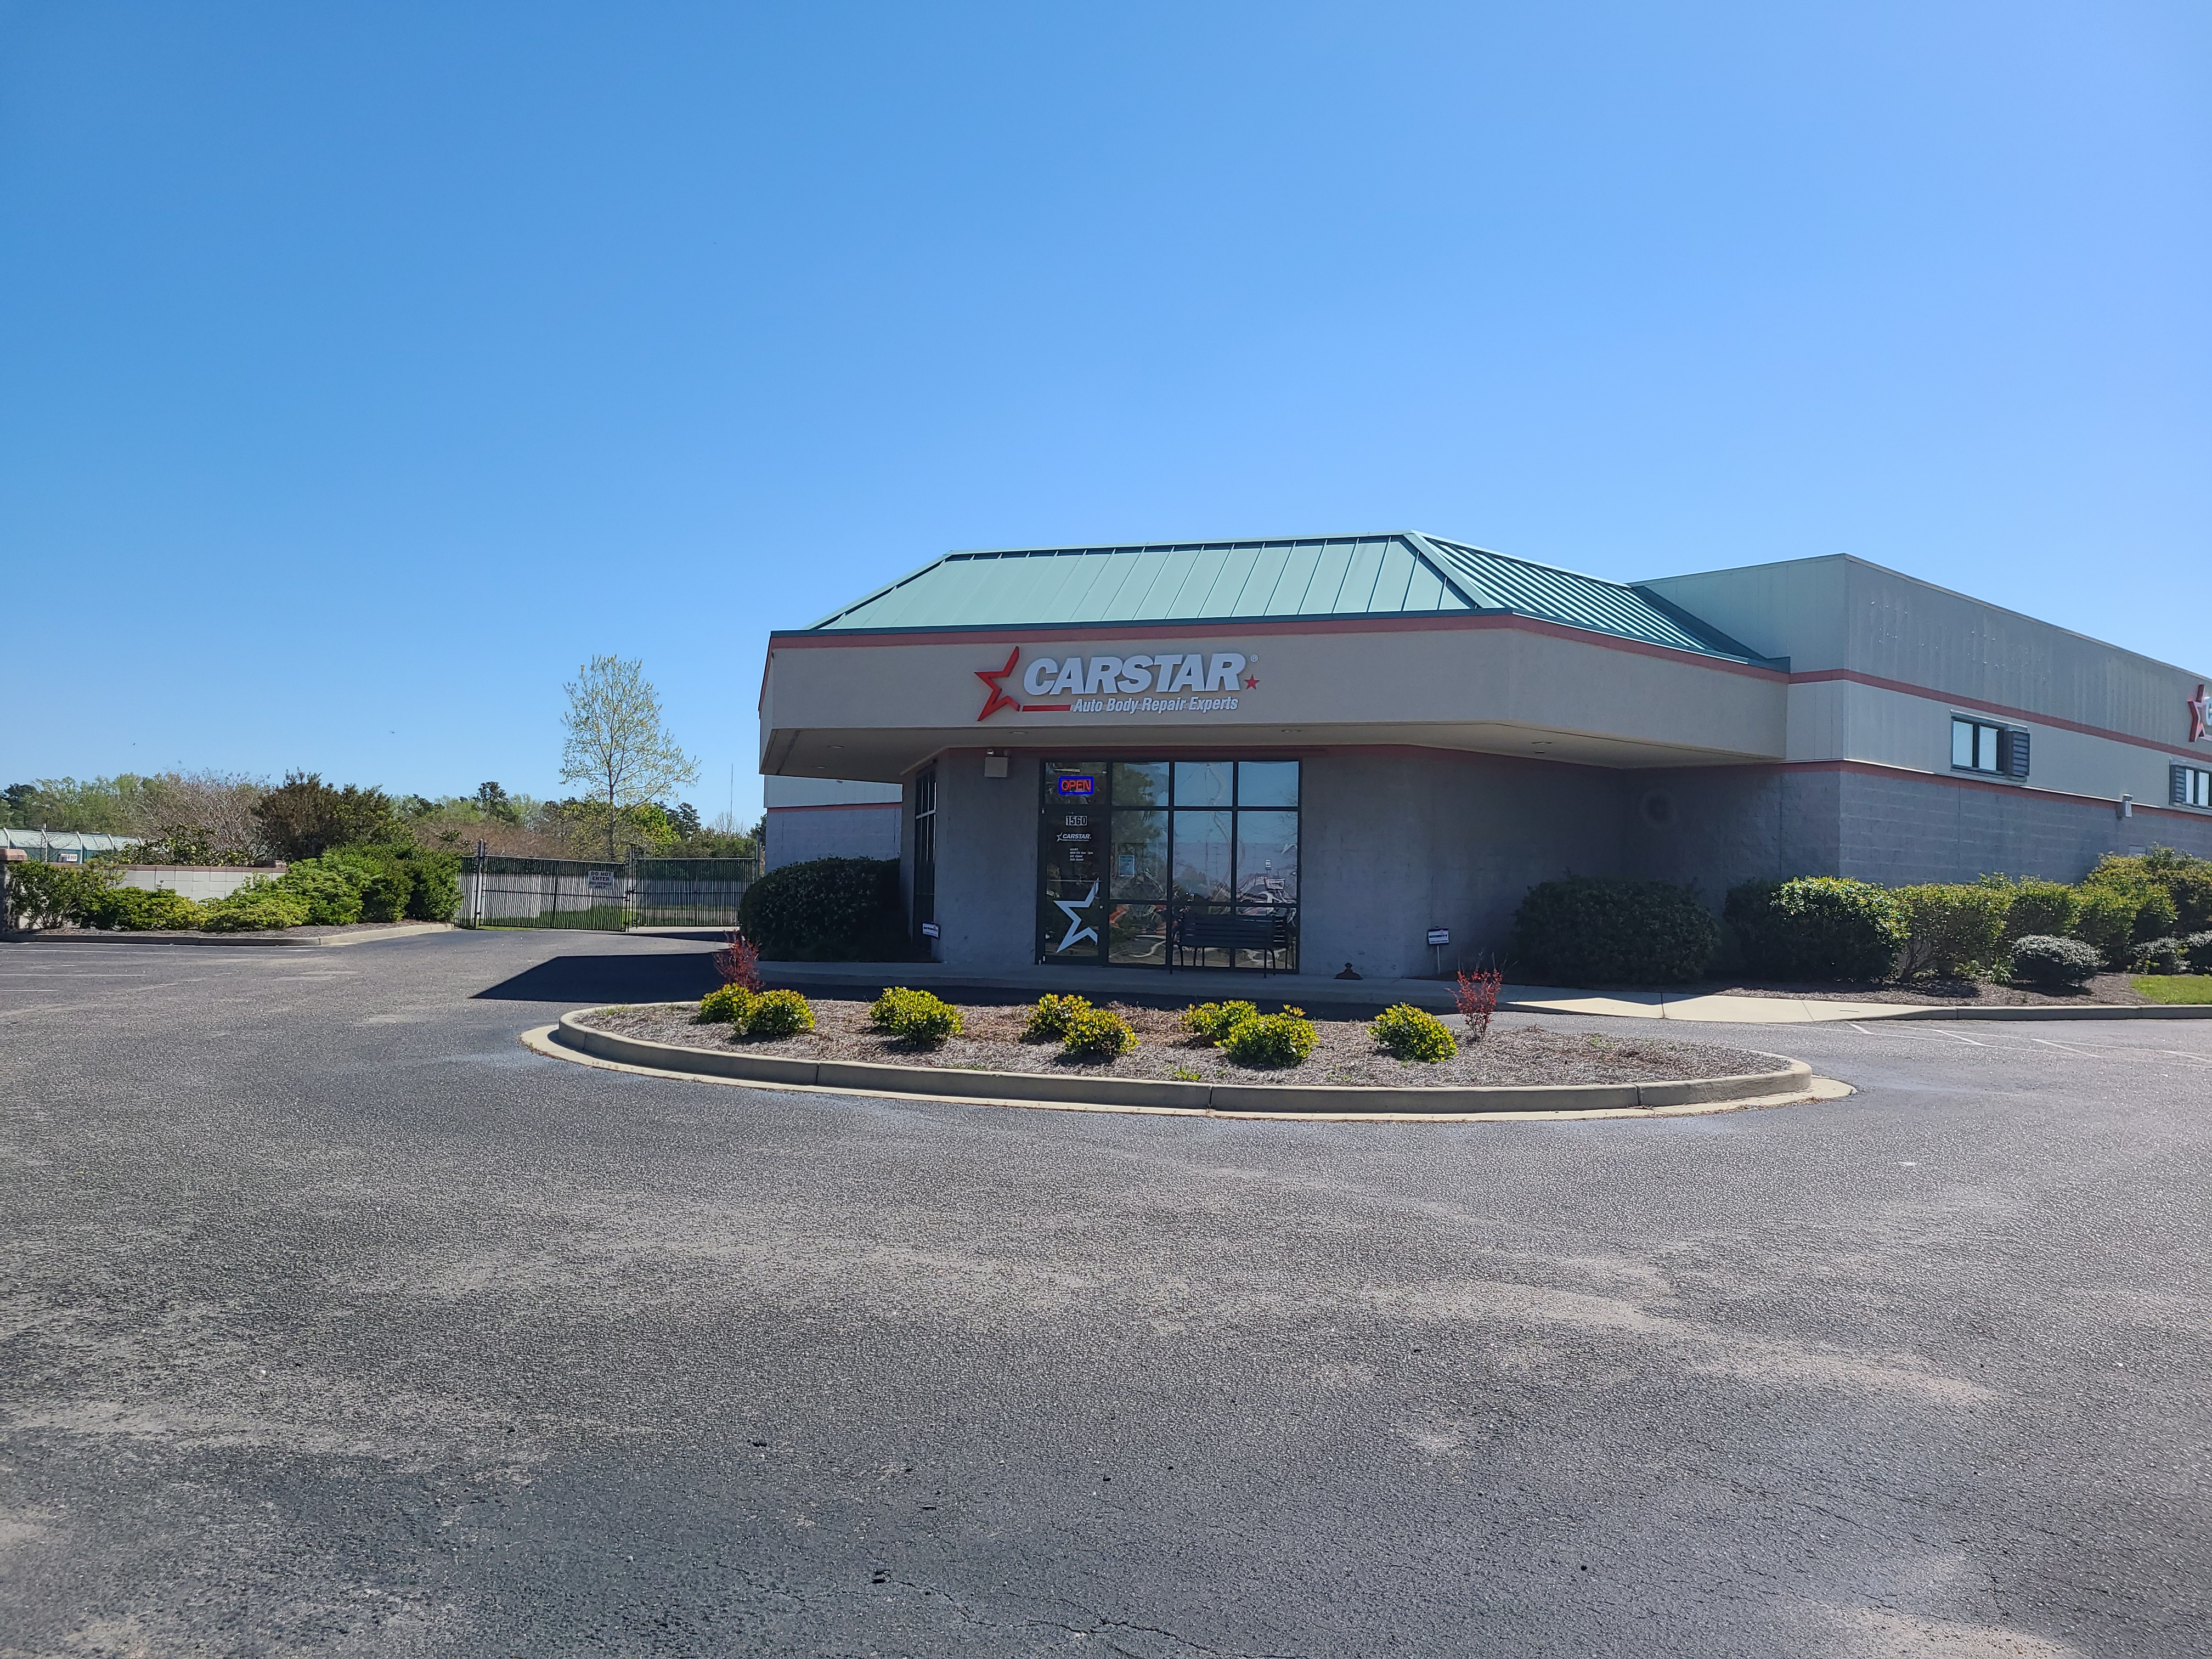 Carstar   Building Front